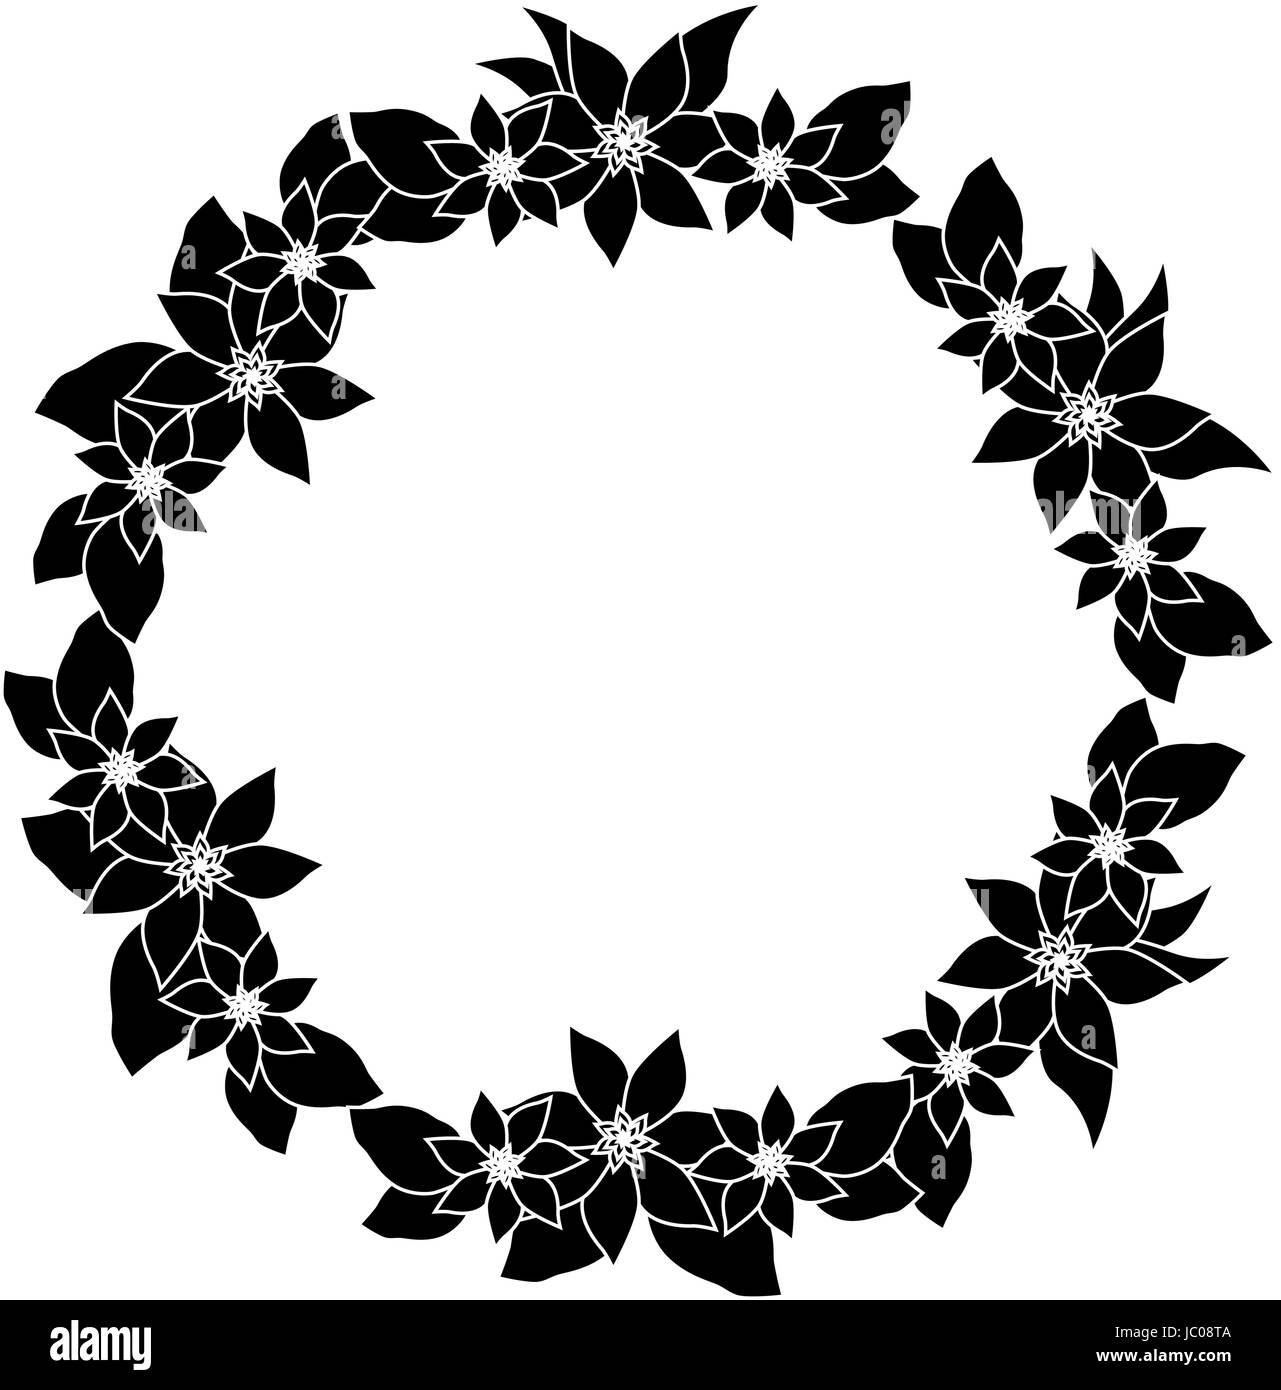 Round Flower Frame Black And White Stock Photos Images Alamy